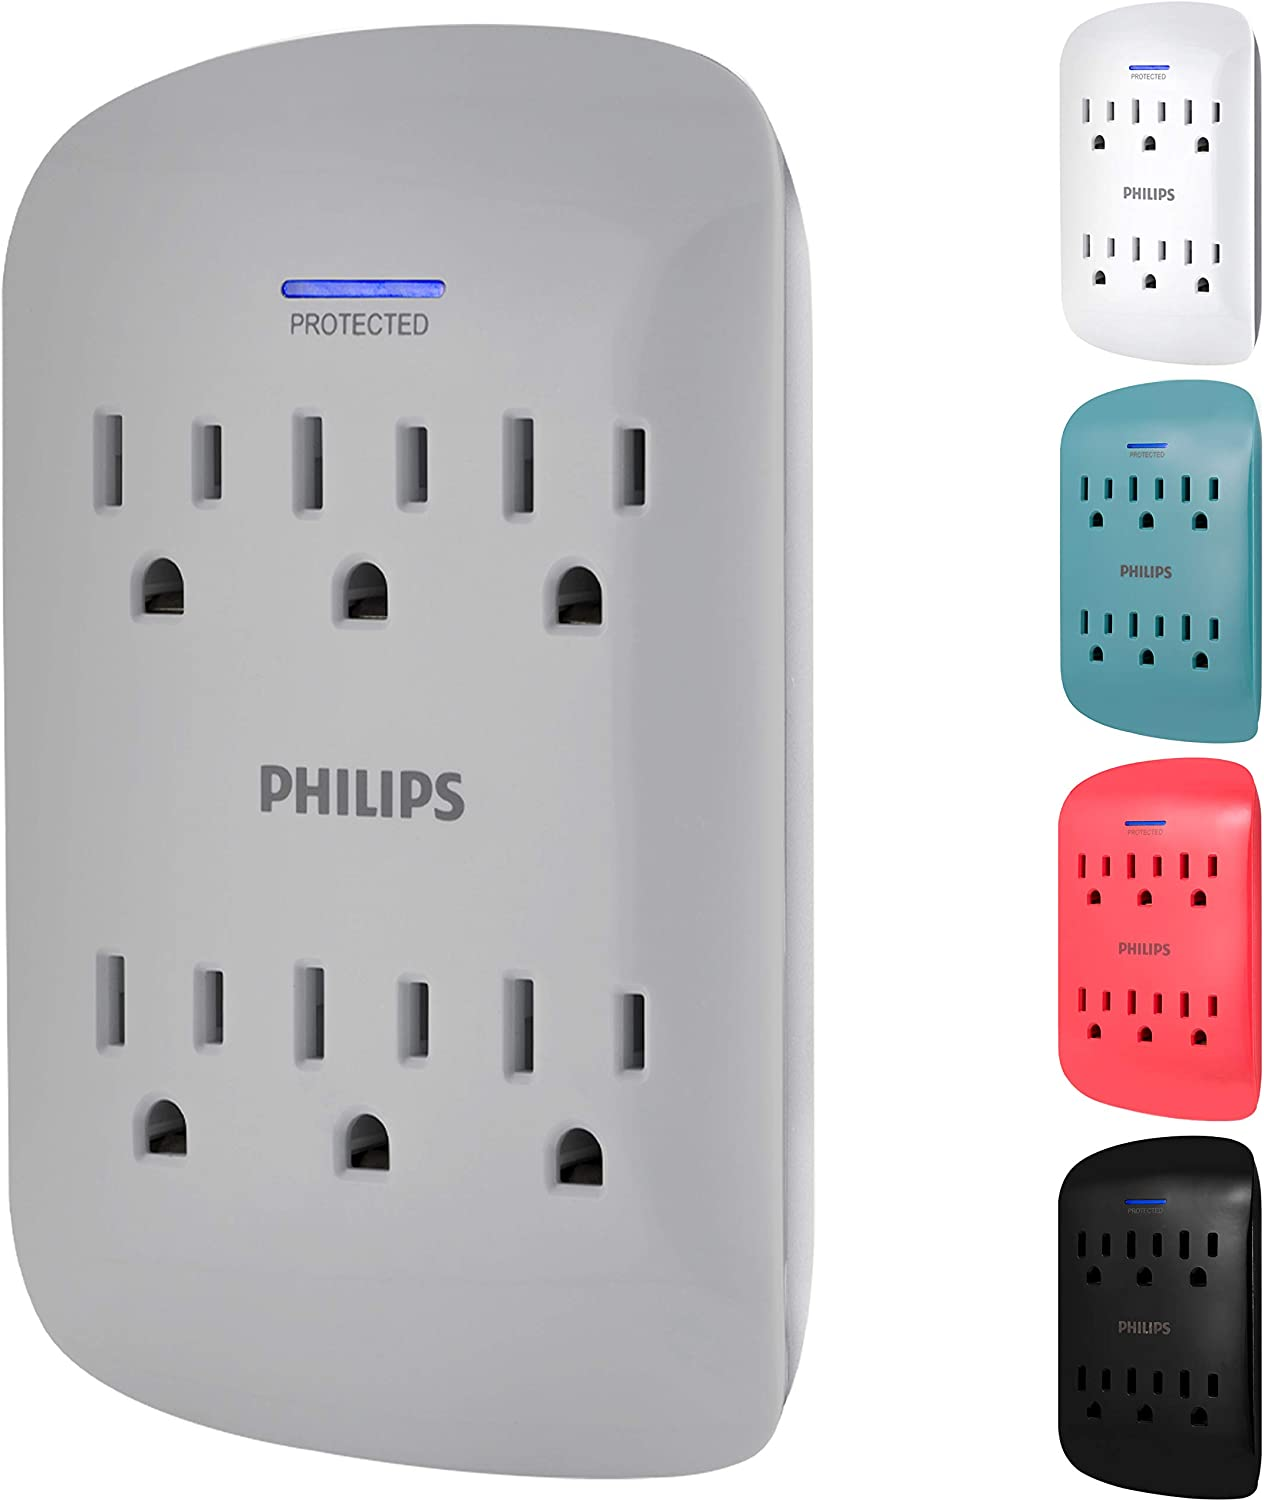 Philips 6-Outlet Extender Surge Protector, 900 Joules, 3-Prong, Space Saving Design, Protection Indicator LED Light, Grey, SPP3461GR/37, 1 Pack